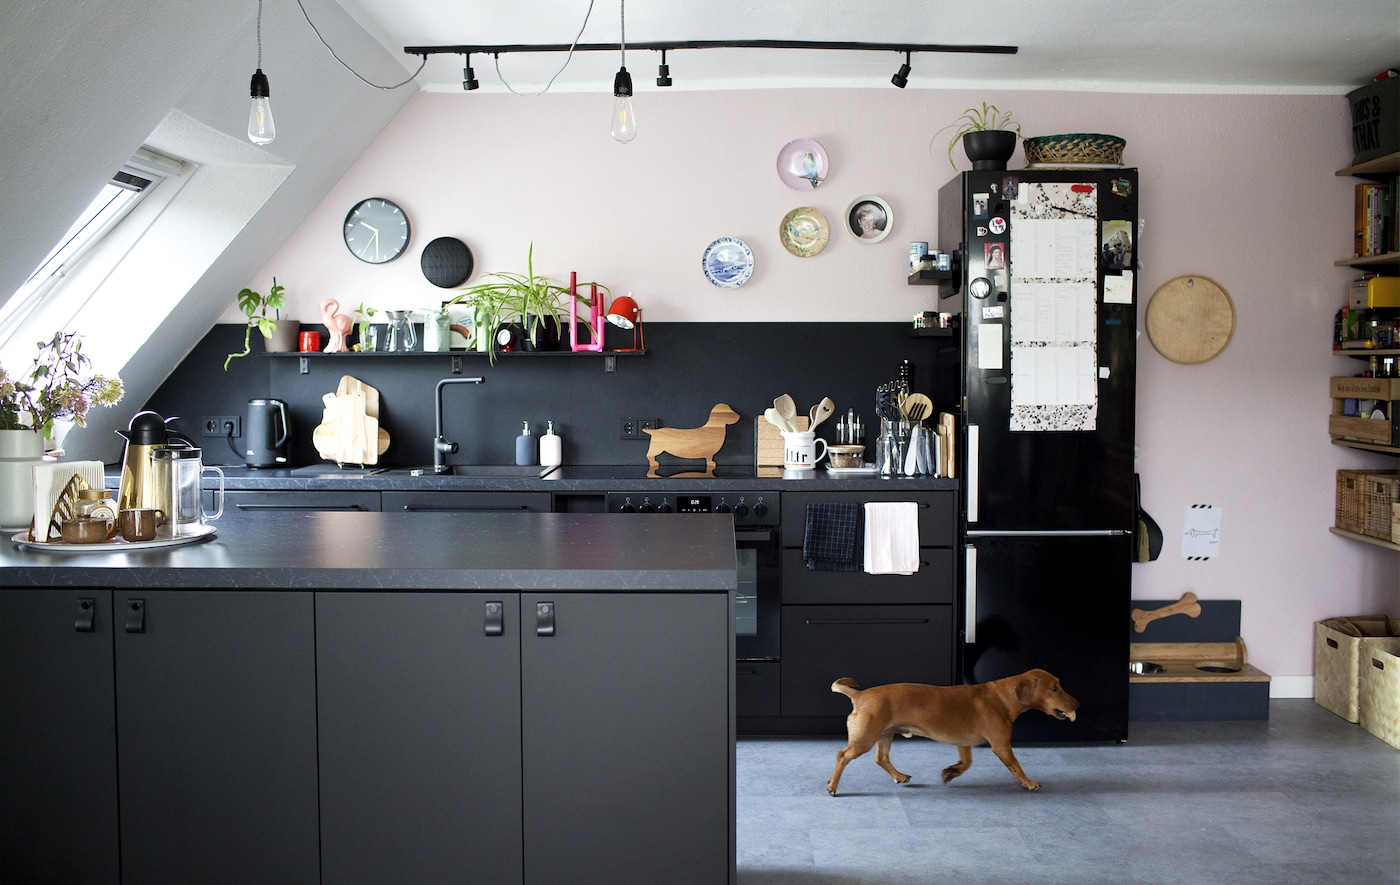 A kitchen area with a black, white and pastel-pink open kitchen with light bulbs hanging from the ceiling, and a dog.